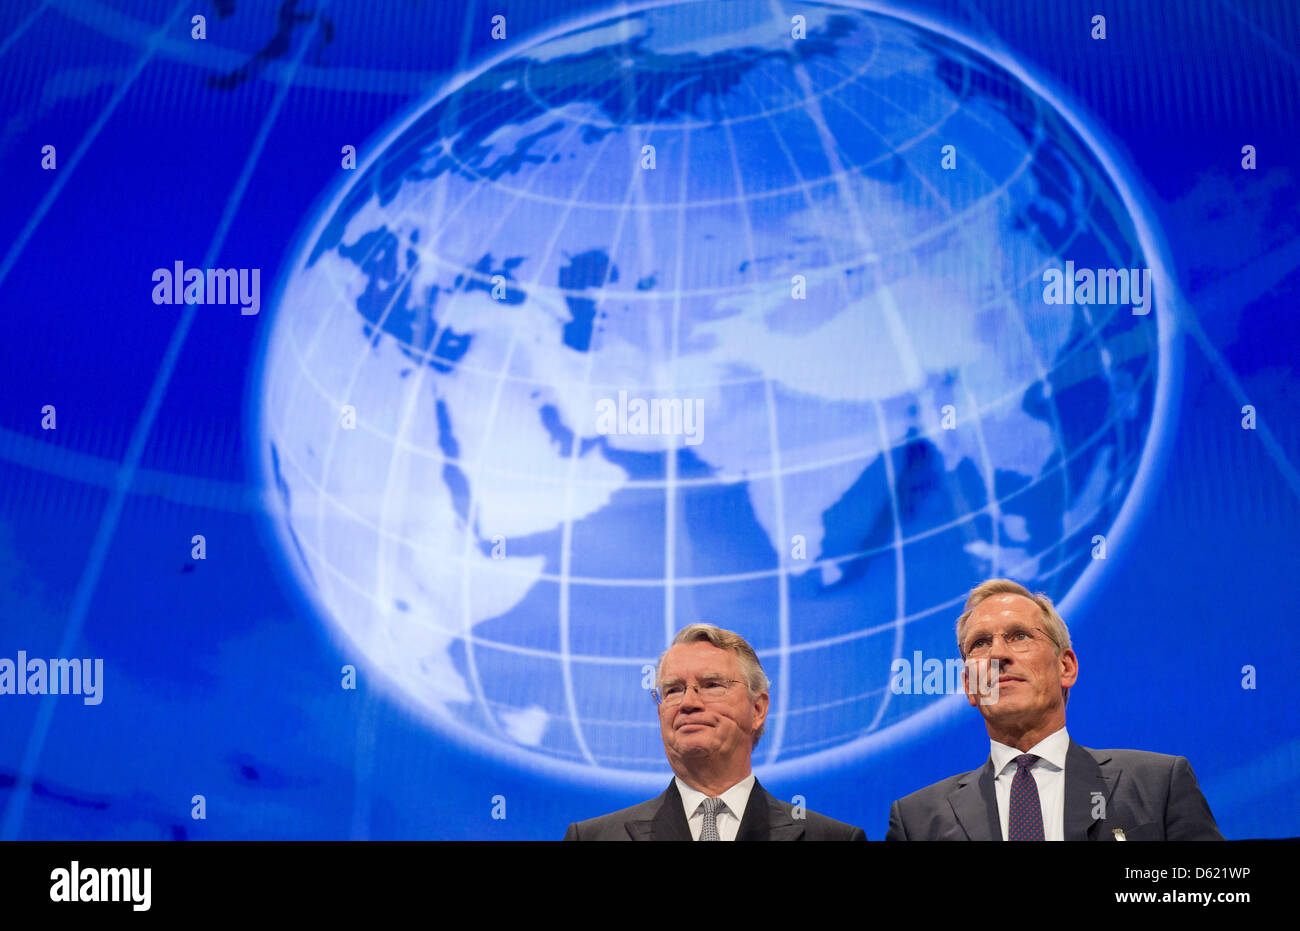 Chairman of the board of Allianz SE Henning Schulte-Noelle (L) and CEO od ALiianz SE Michael Diekmann stand in front of an animated picture of the globe at the general meeting of shareholders at the Olympic Hall in Munich, Germany, 09 May 2012. After a rather bad last year, Allianz can report a good start for 2012. Photo: PETER KNEFFEL Stock Photo